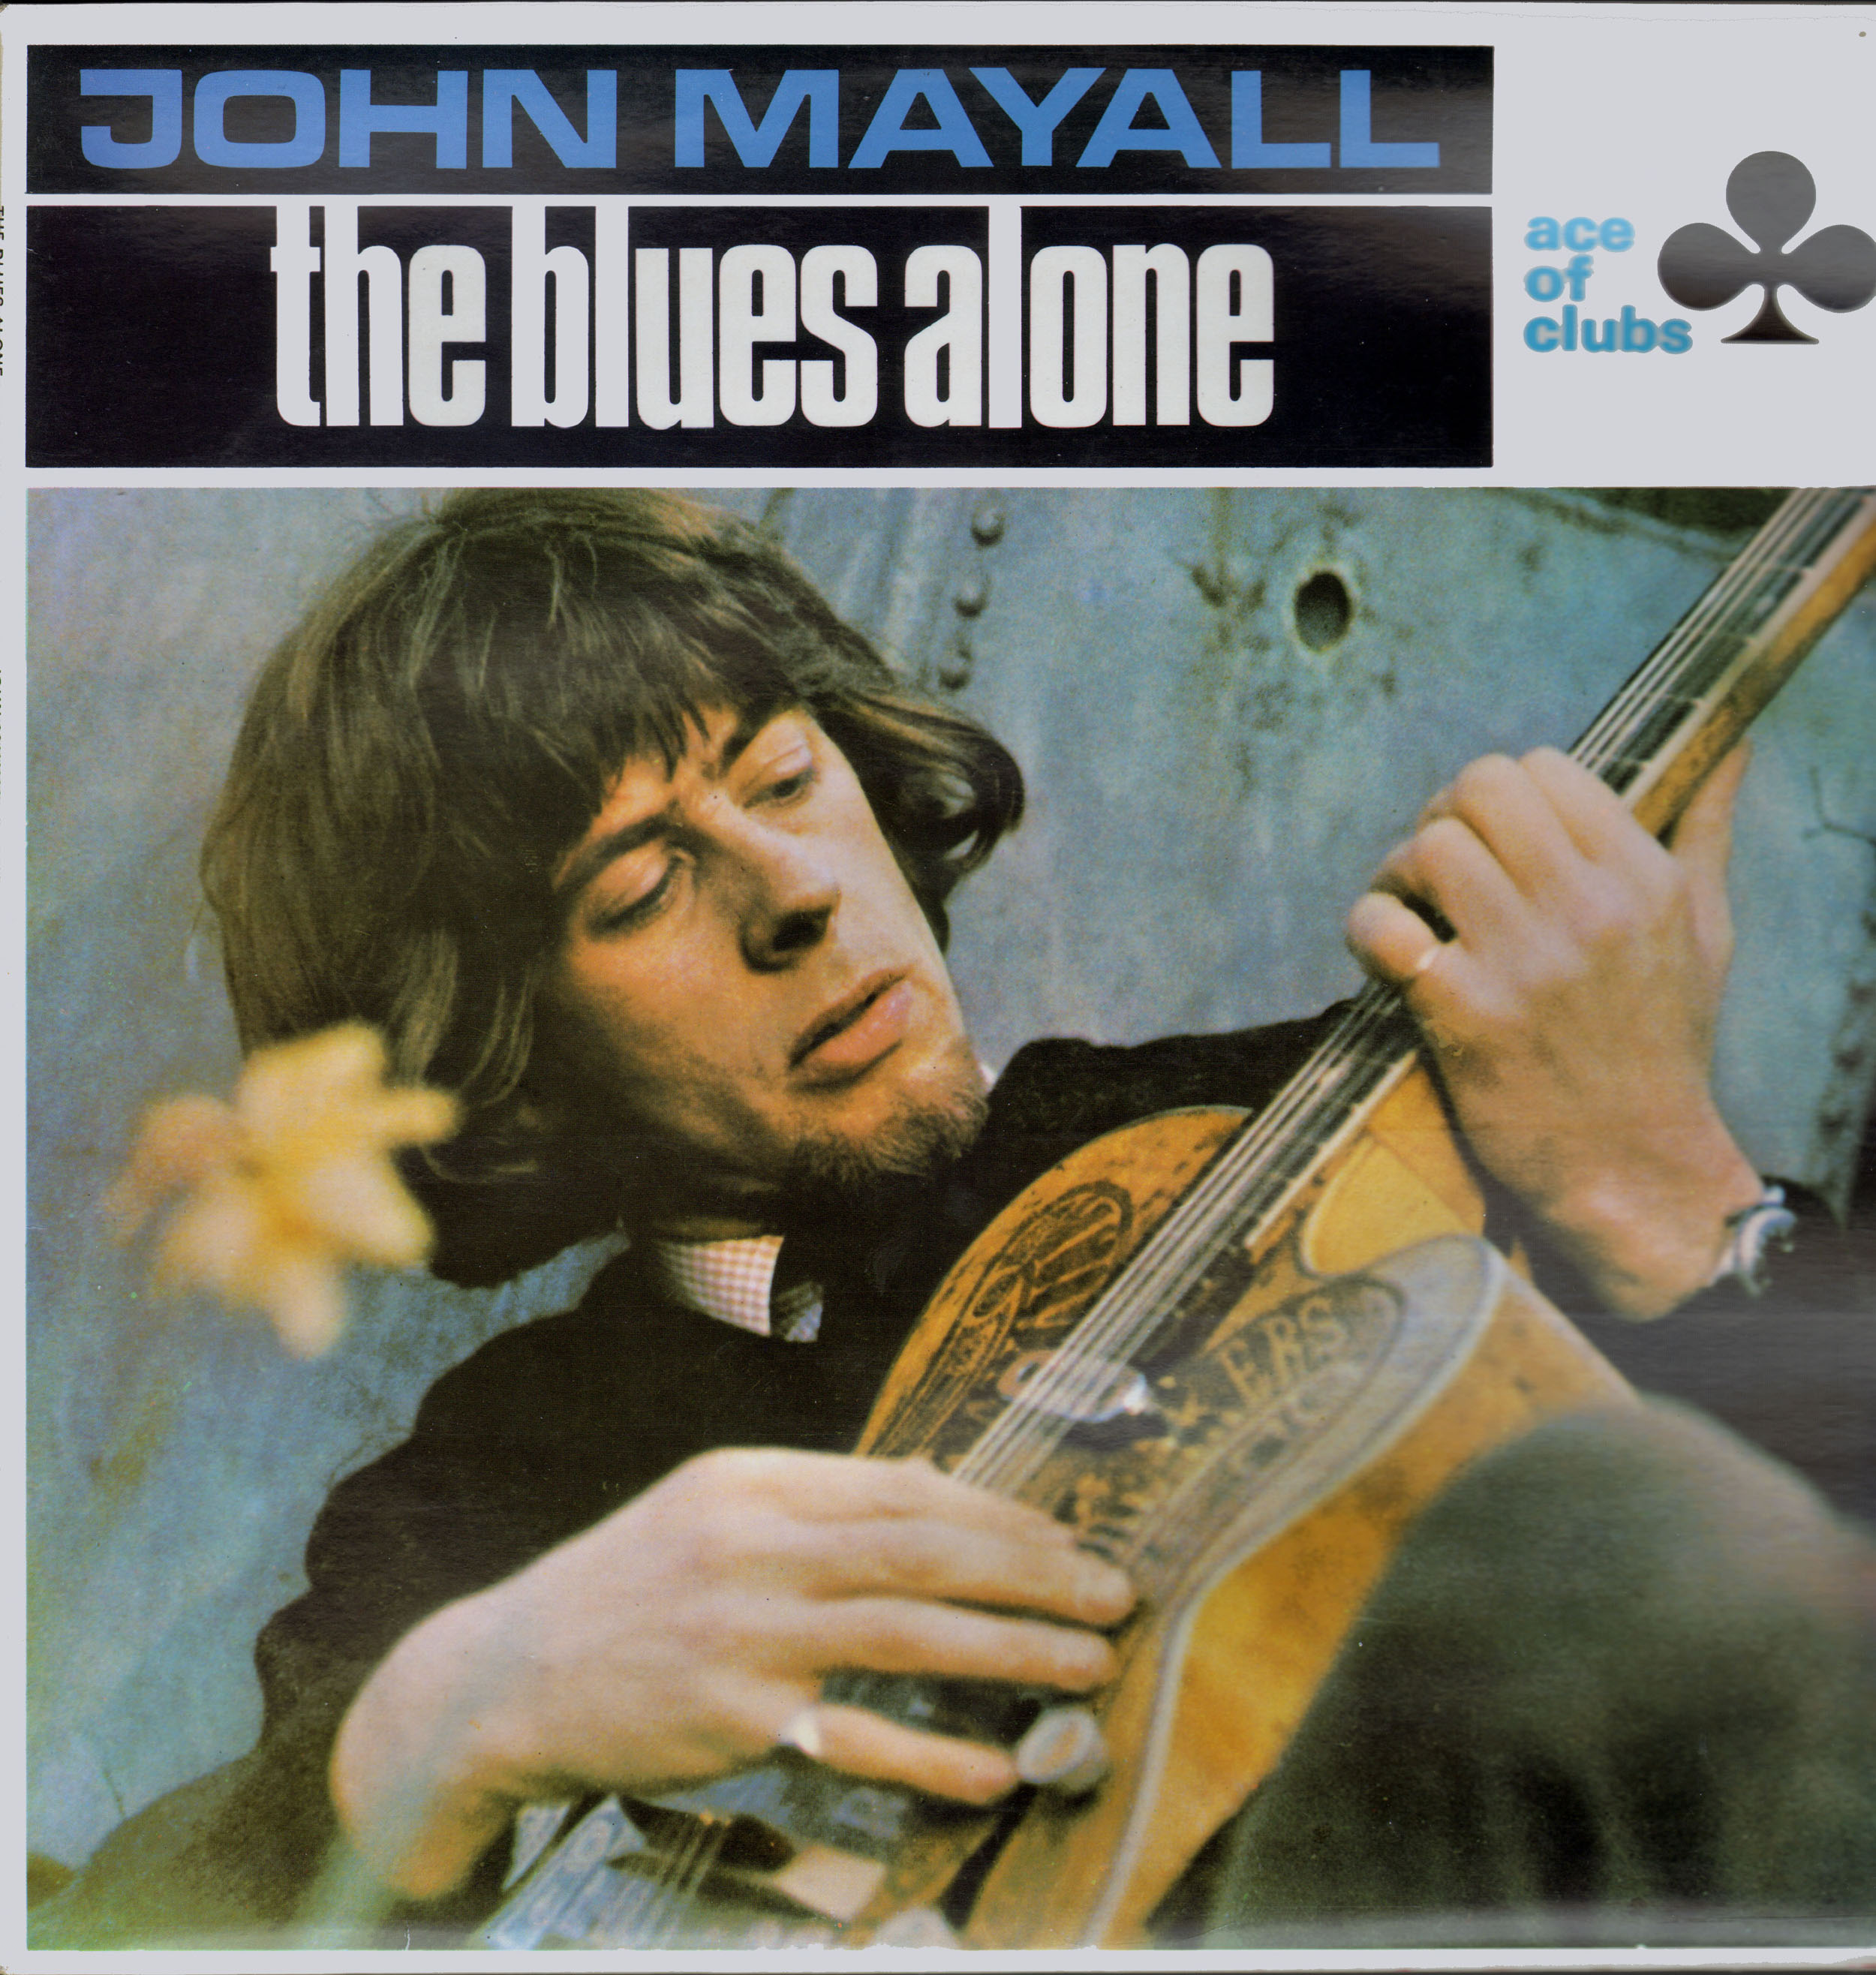 John mayall album by album thread page 5 steve hoffman music forums img publicscrutiny Images